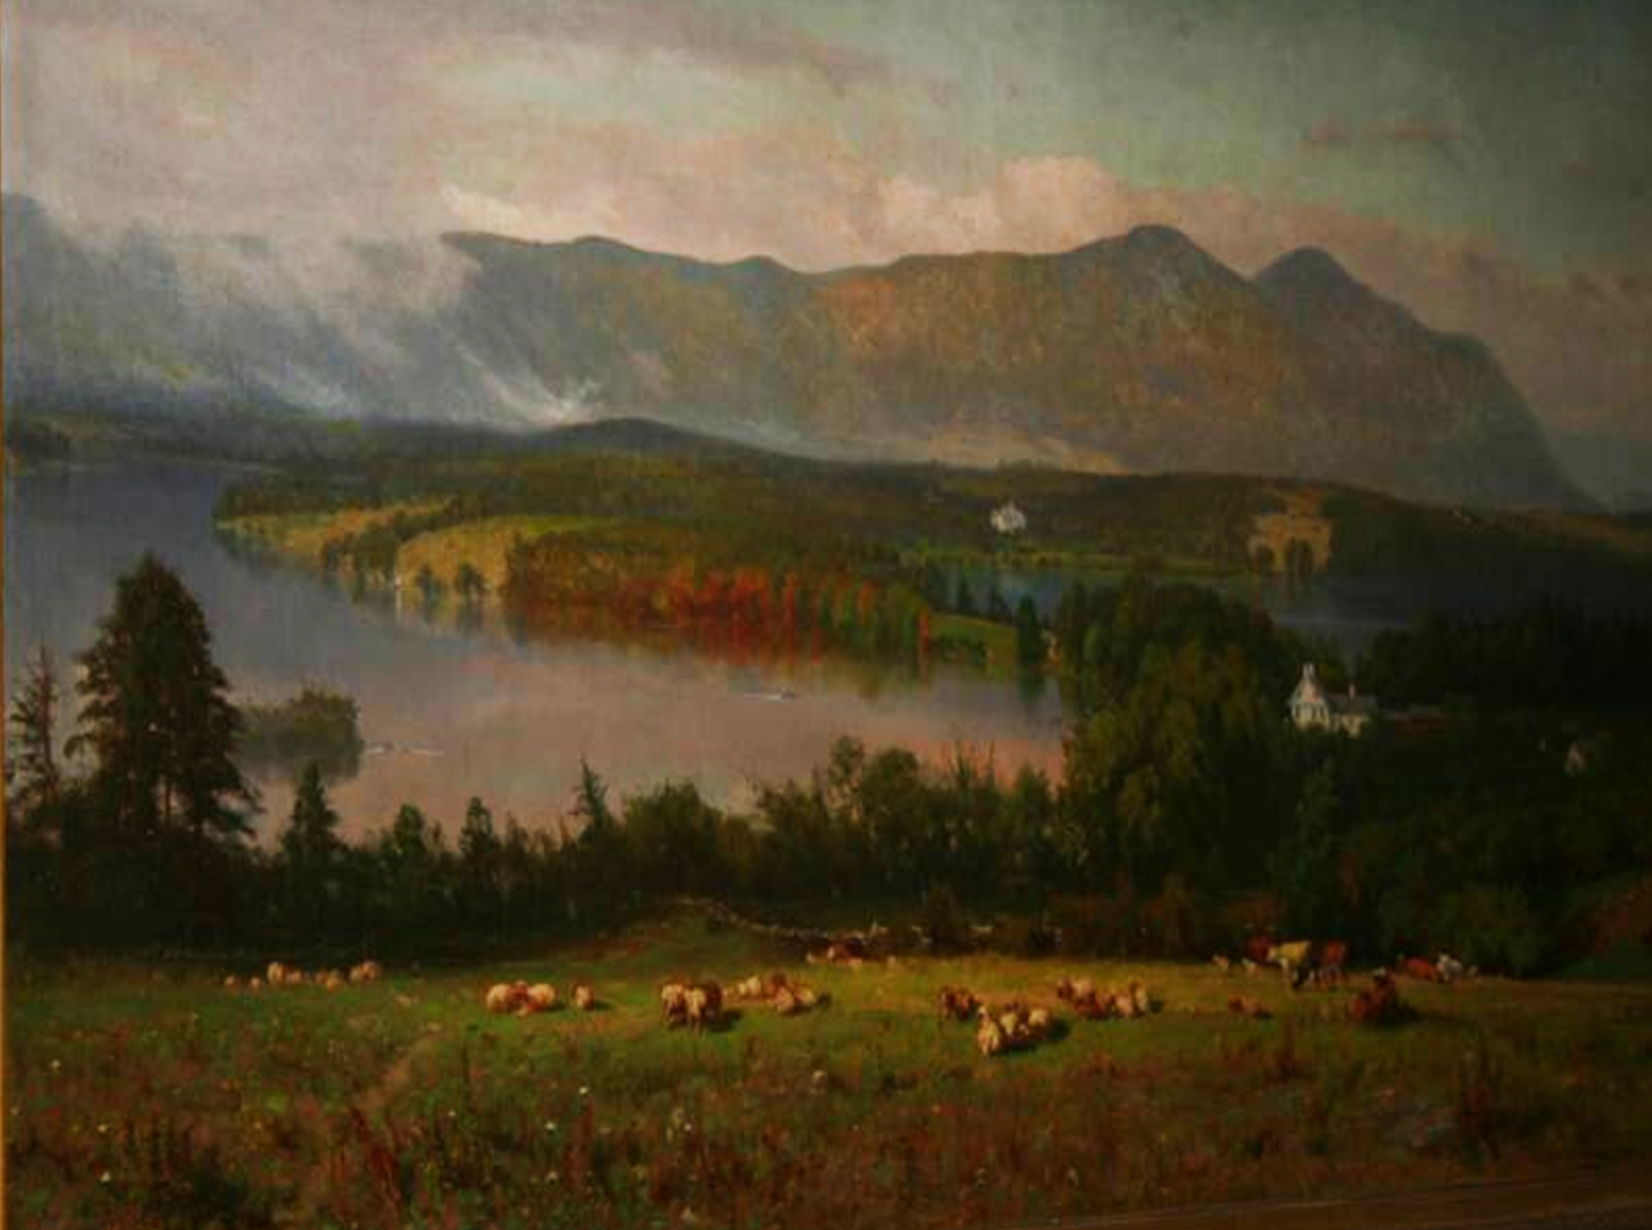 This is a photo of a painting located for viewing in Town Hall.  It is a pastoral view of the Twin Lakes area in Salisbury called Taconic.